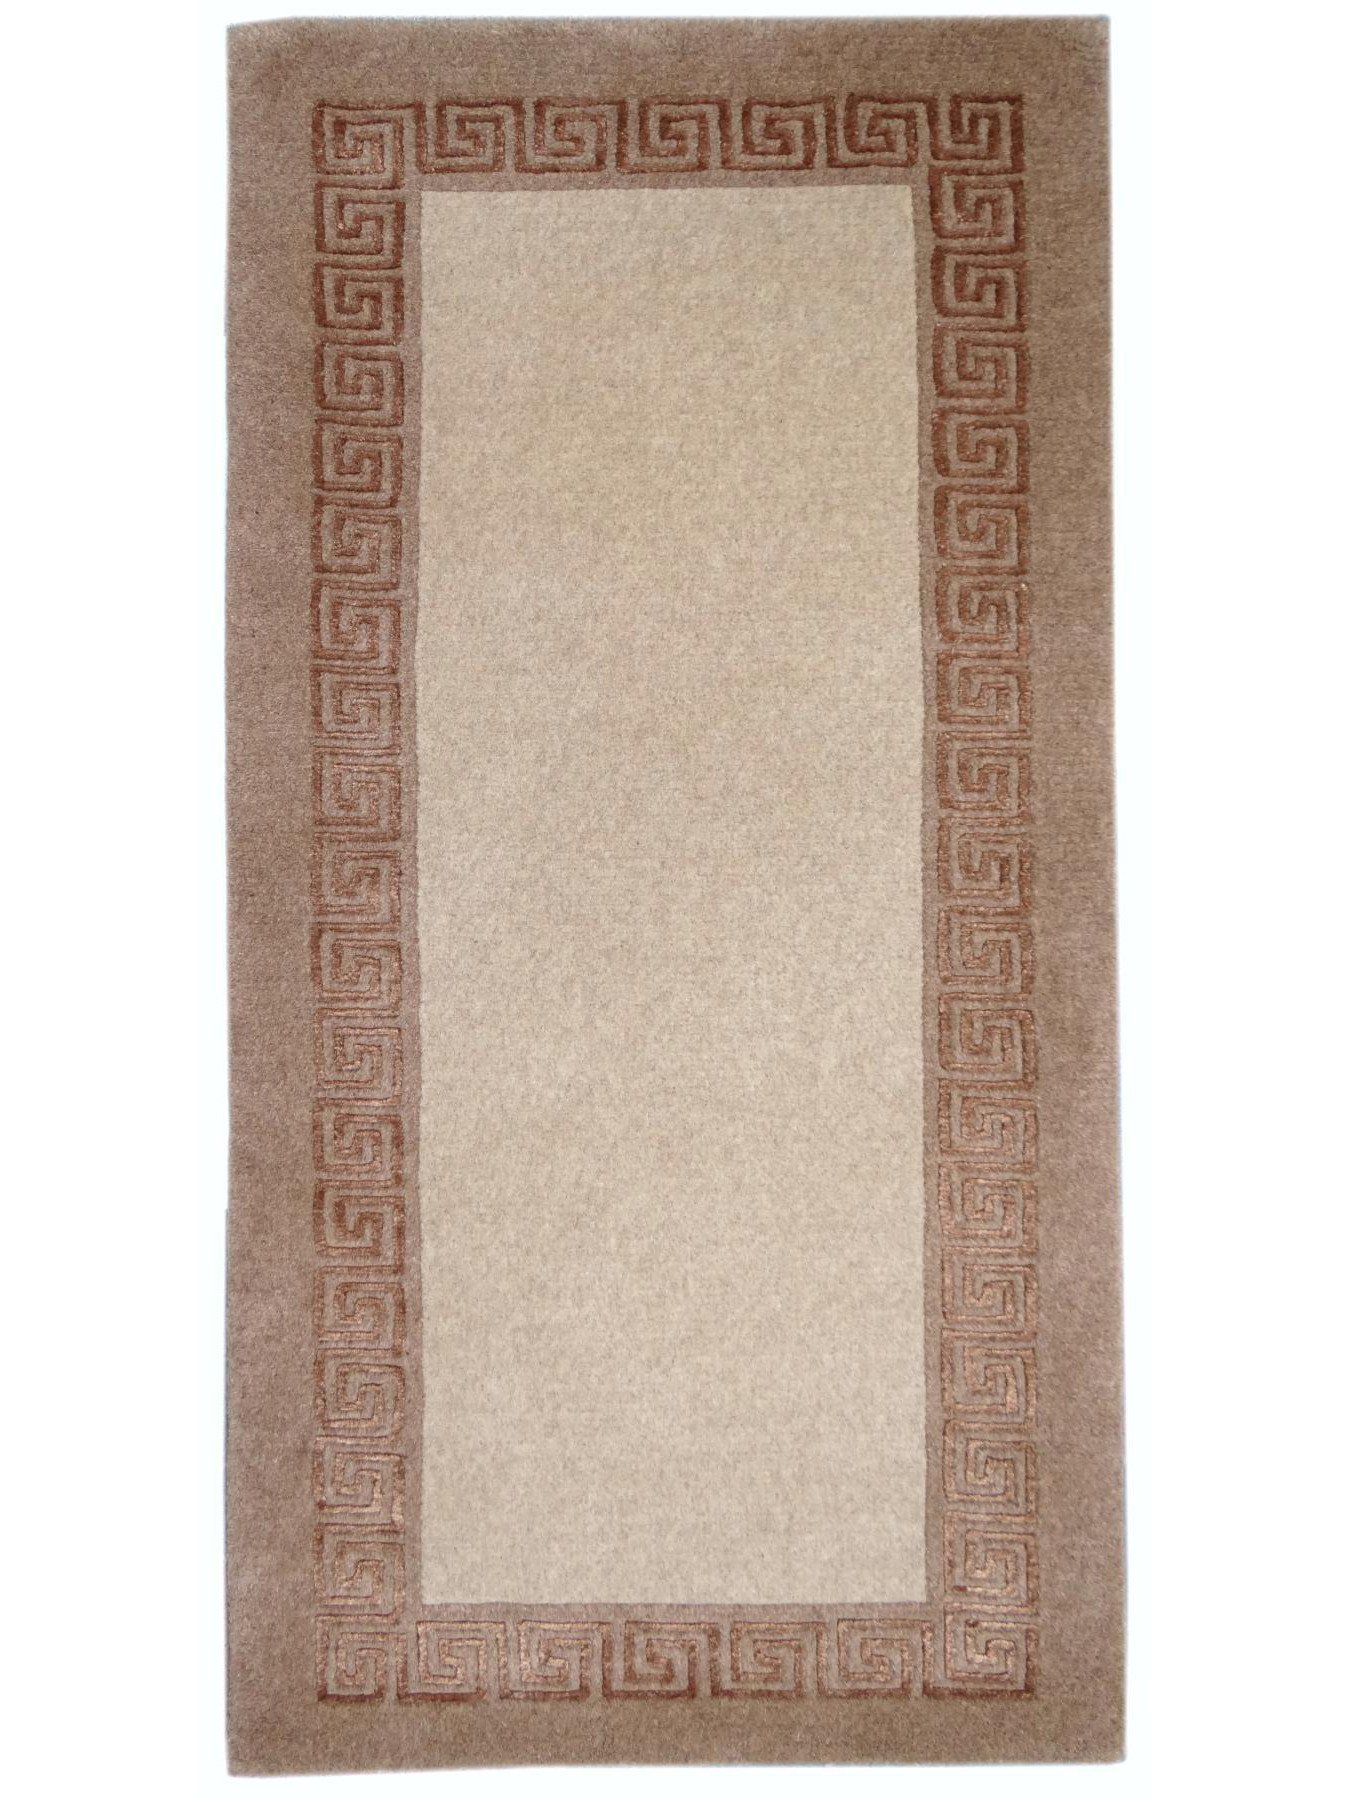 Carpets with borders - CHARISMA 2 - 6666